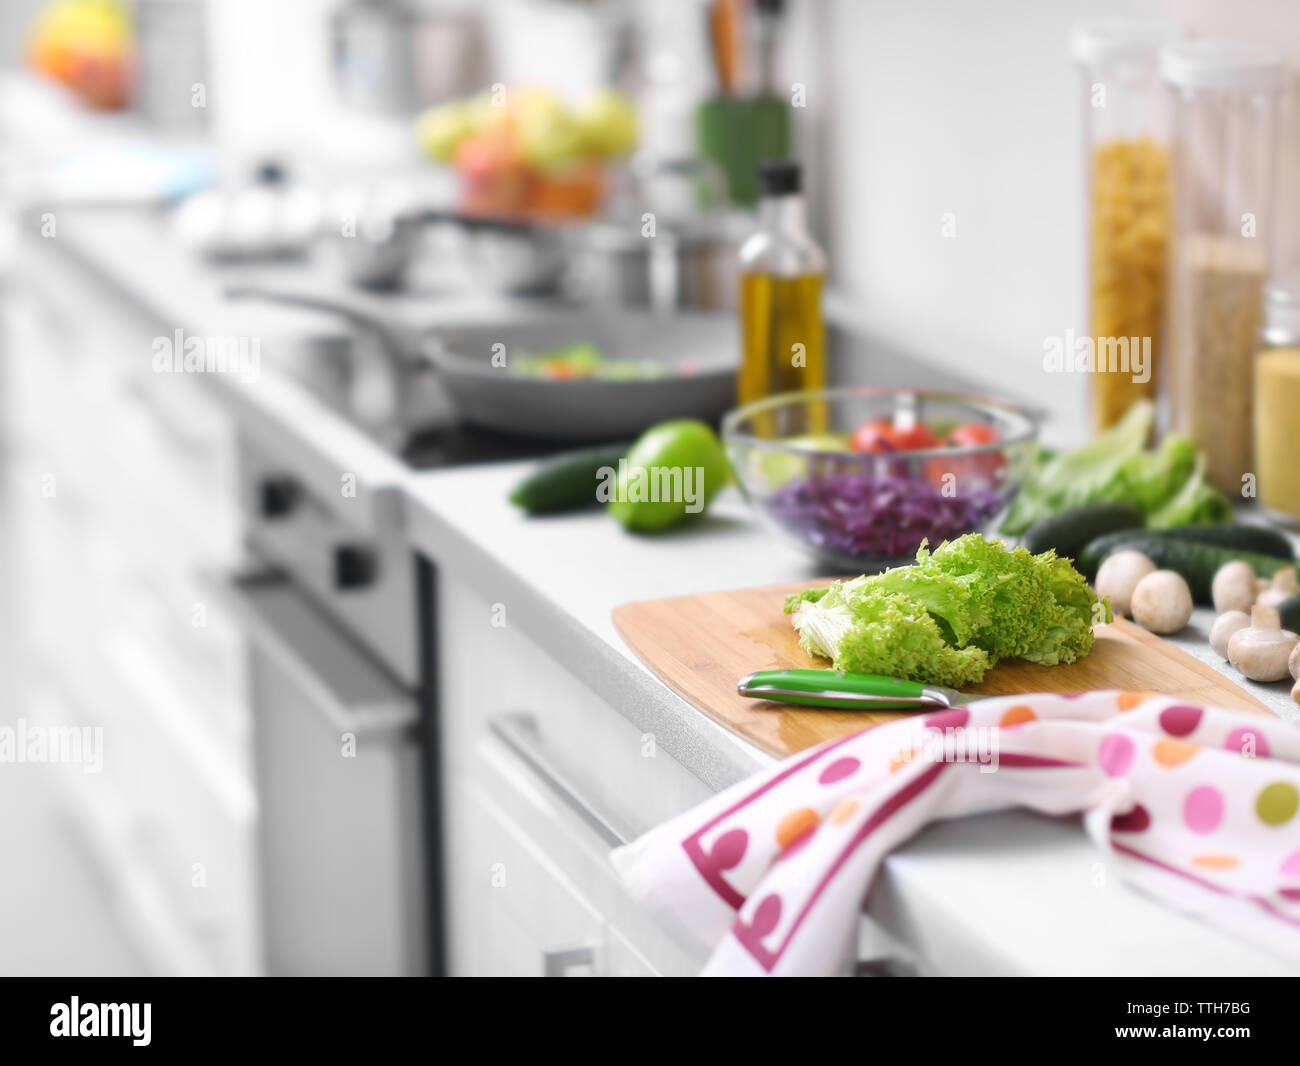 Vegetables on a kitchen table - Stock Image